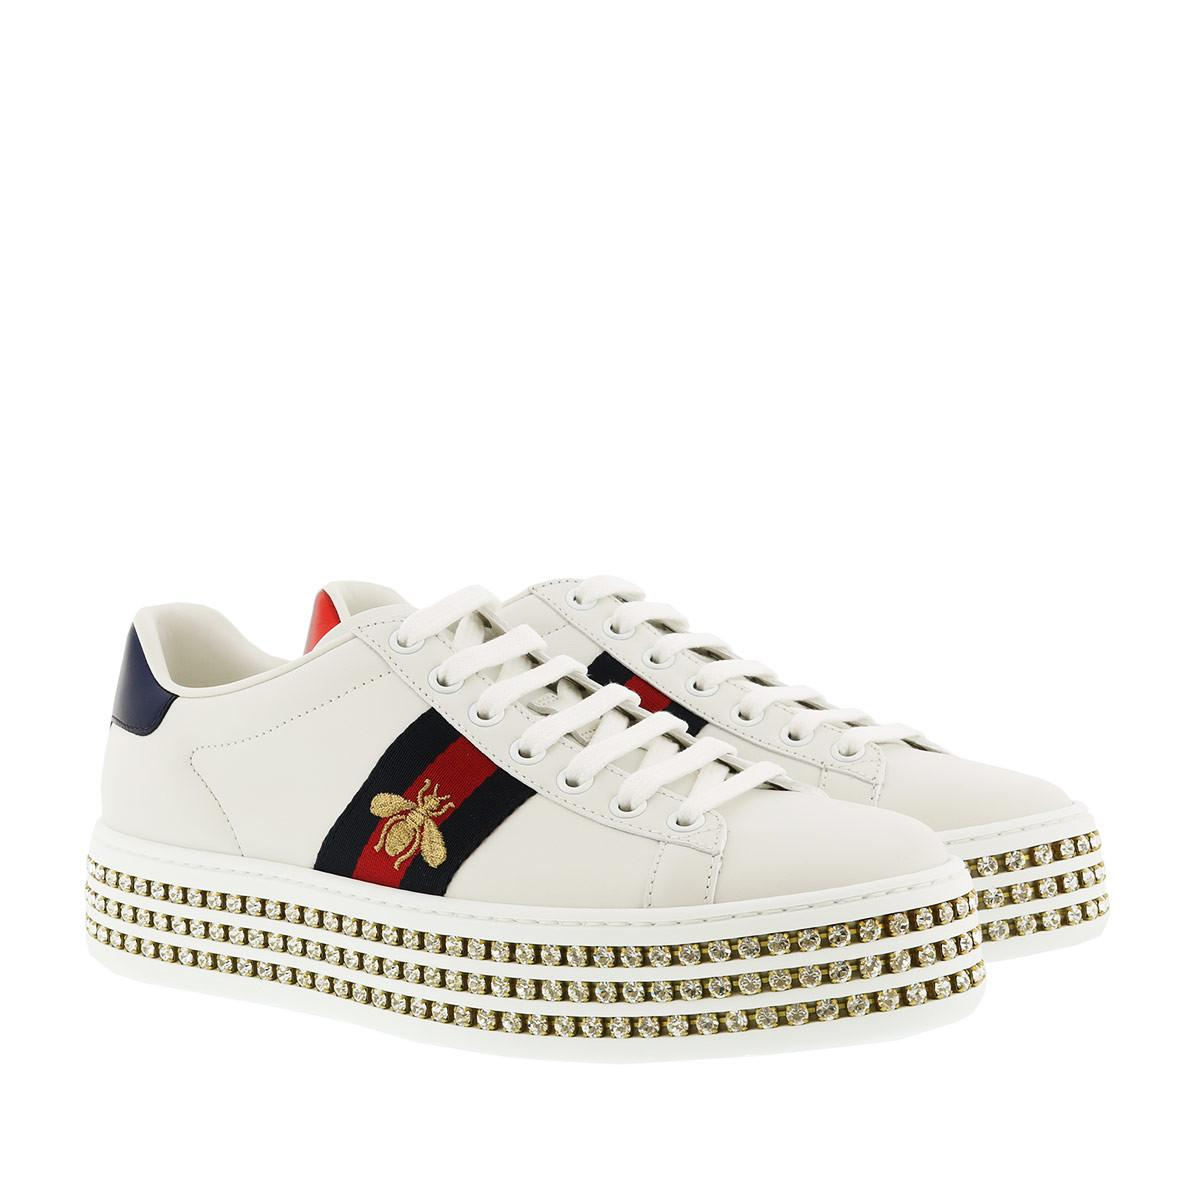 6dab410fa4c Gucci White Crystal New Ace Sneakers in White - Save 15% - Lyst